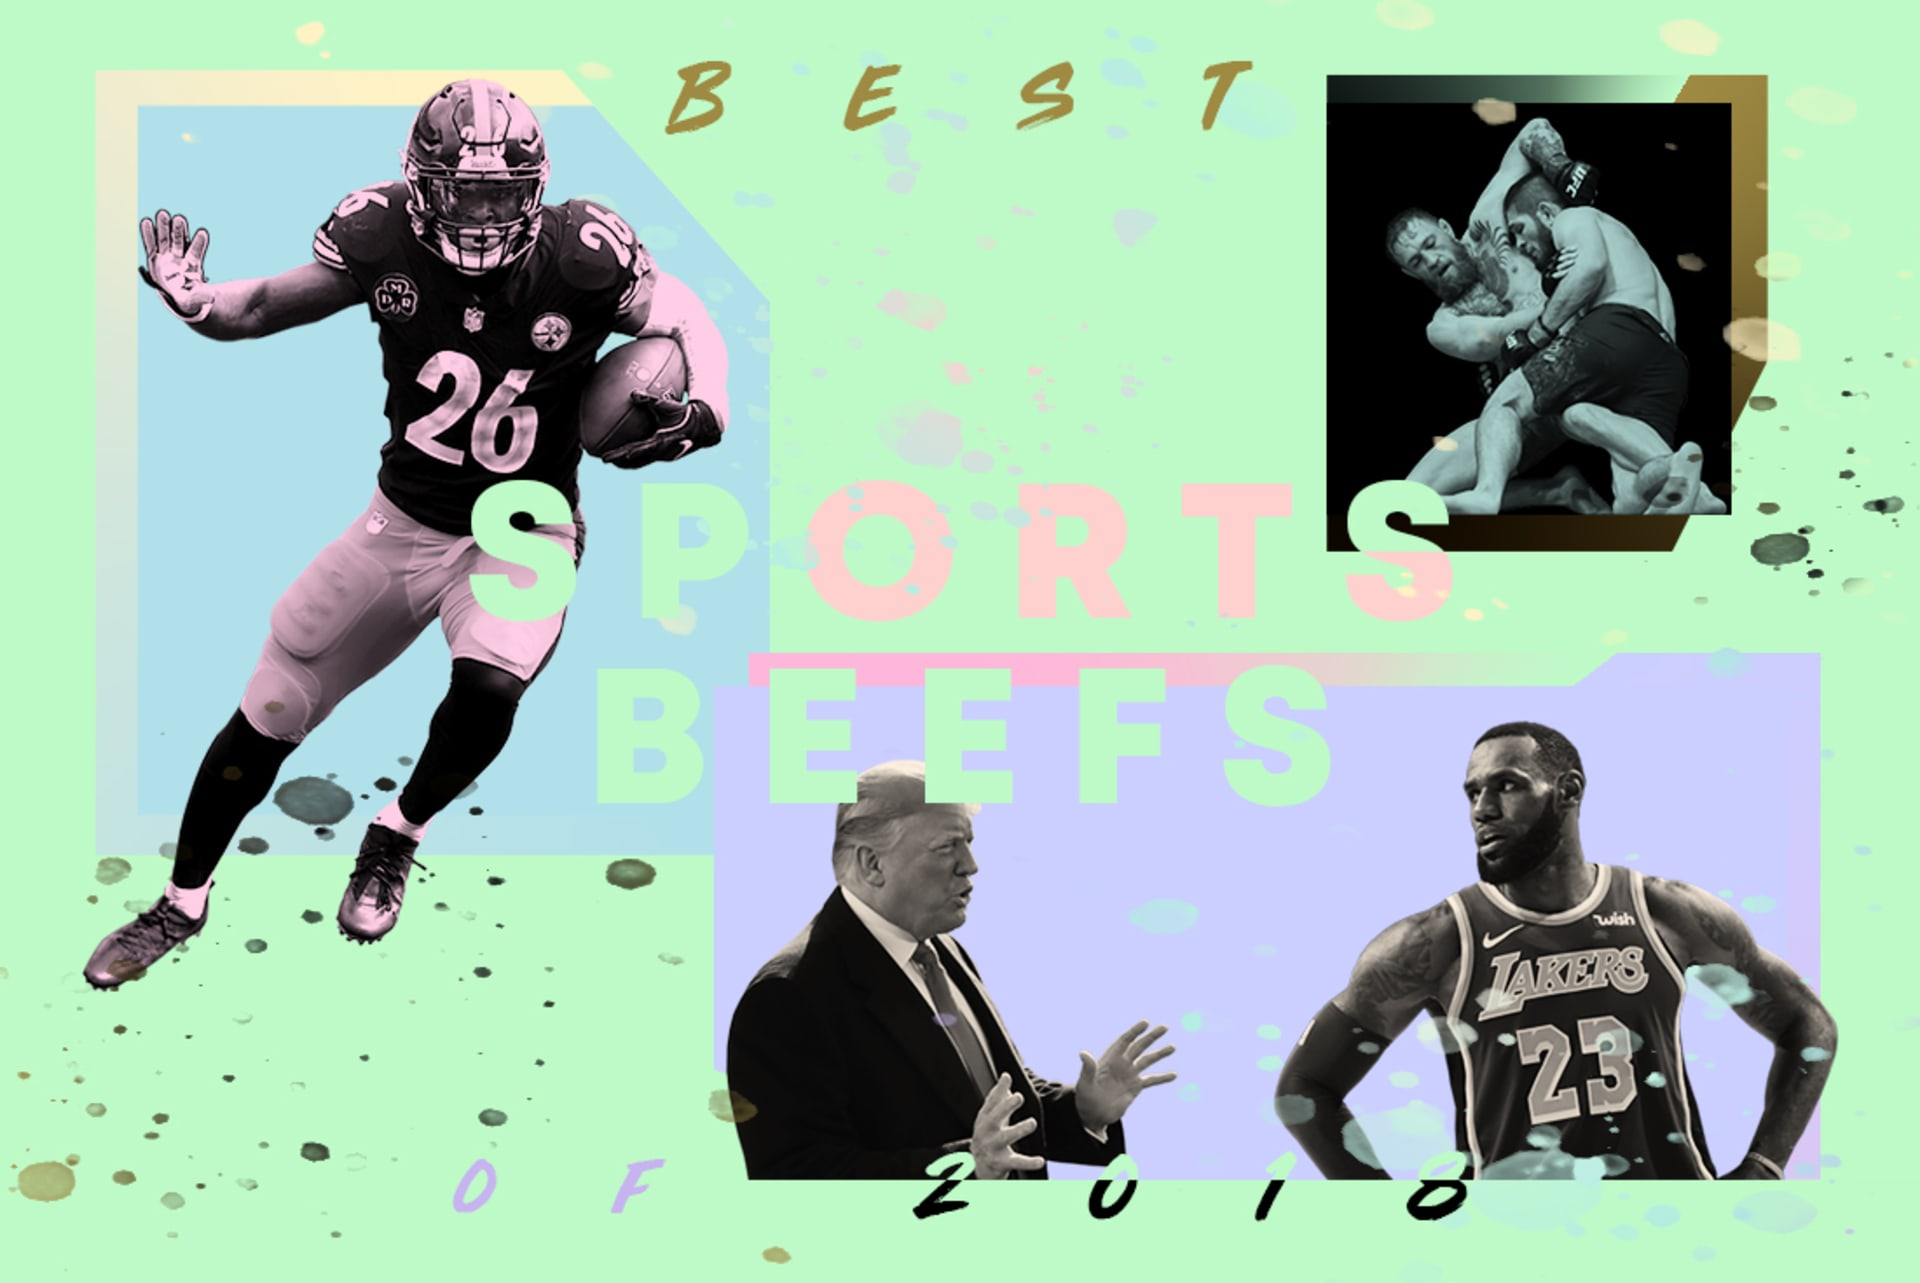 Best Sports Beefs 2018 Lead Image